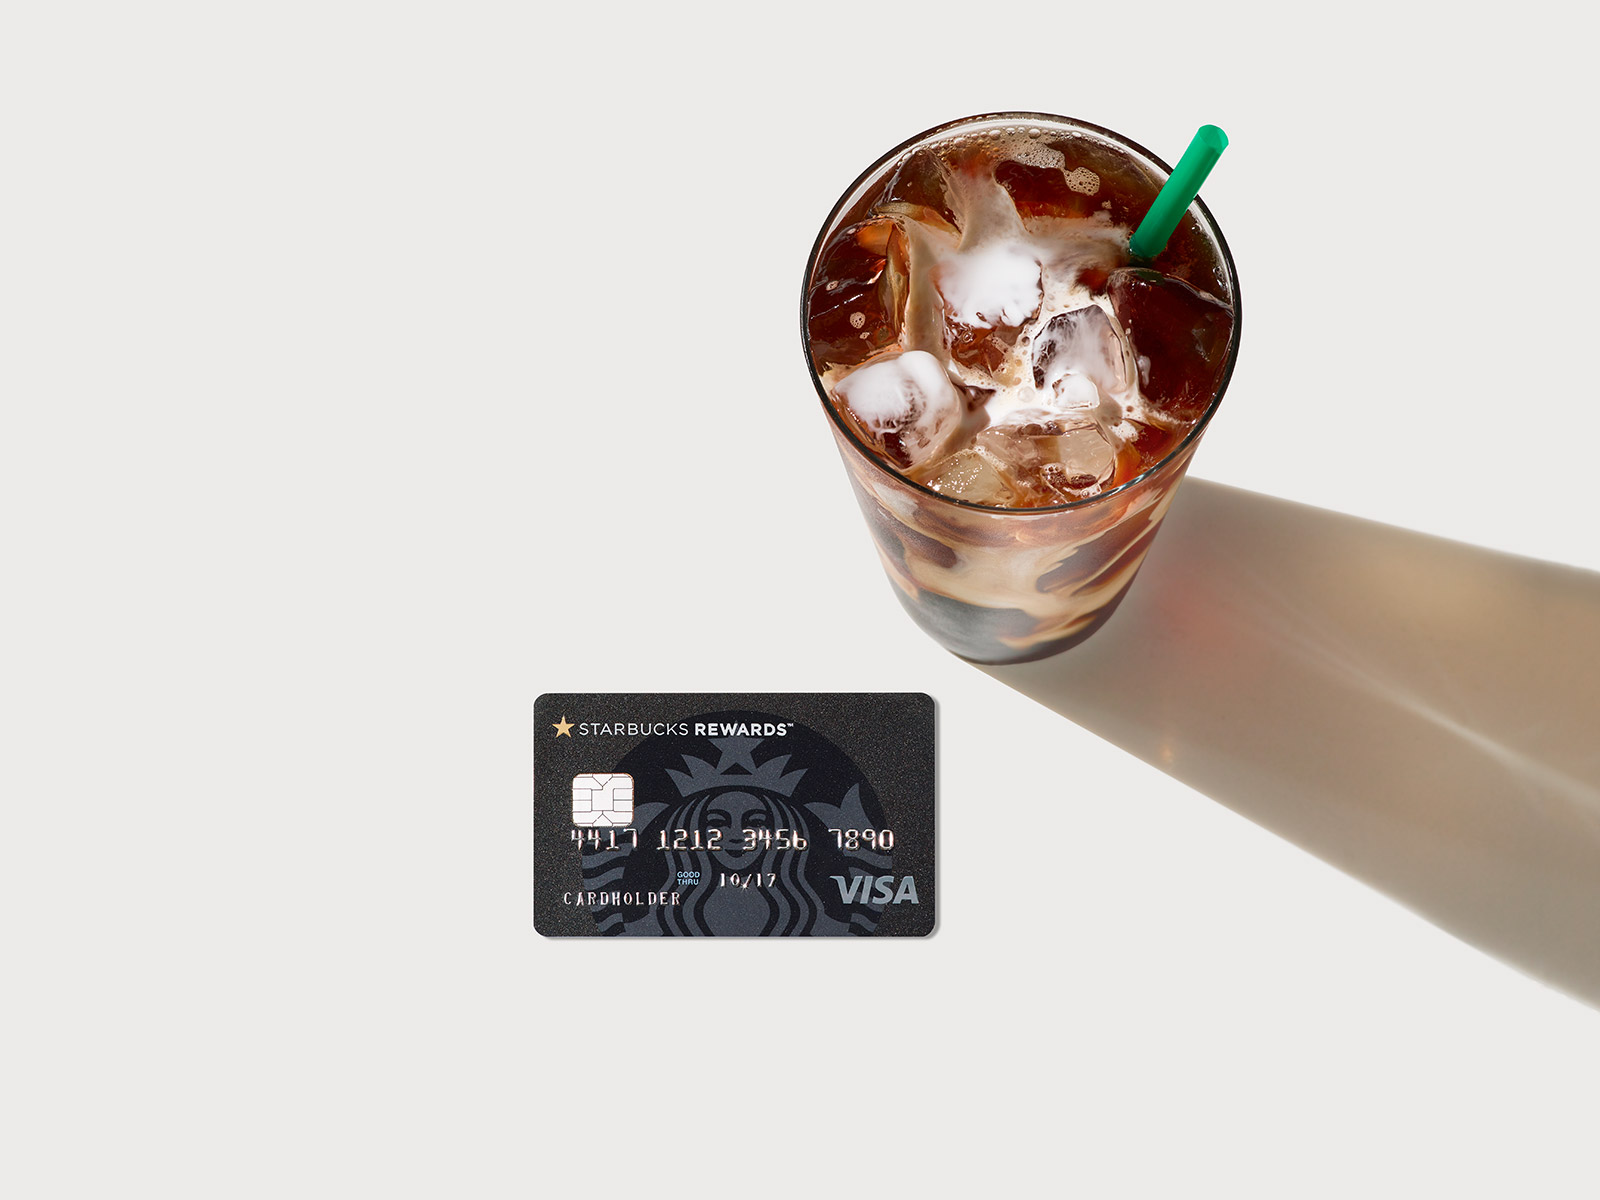 The New Starbucks Visa Card